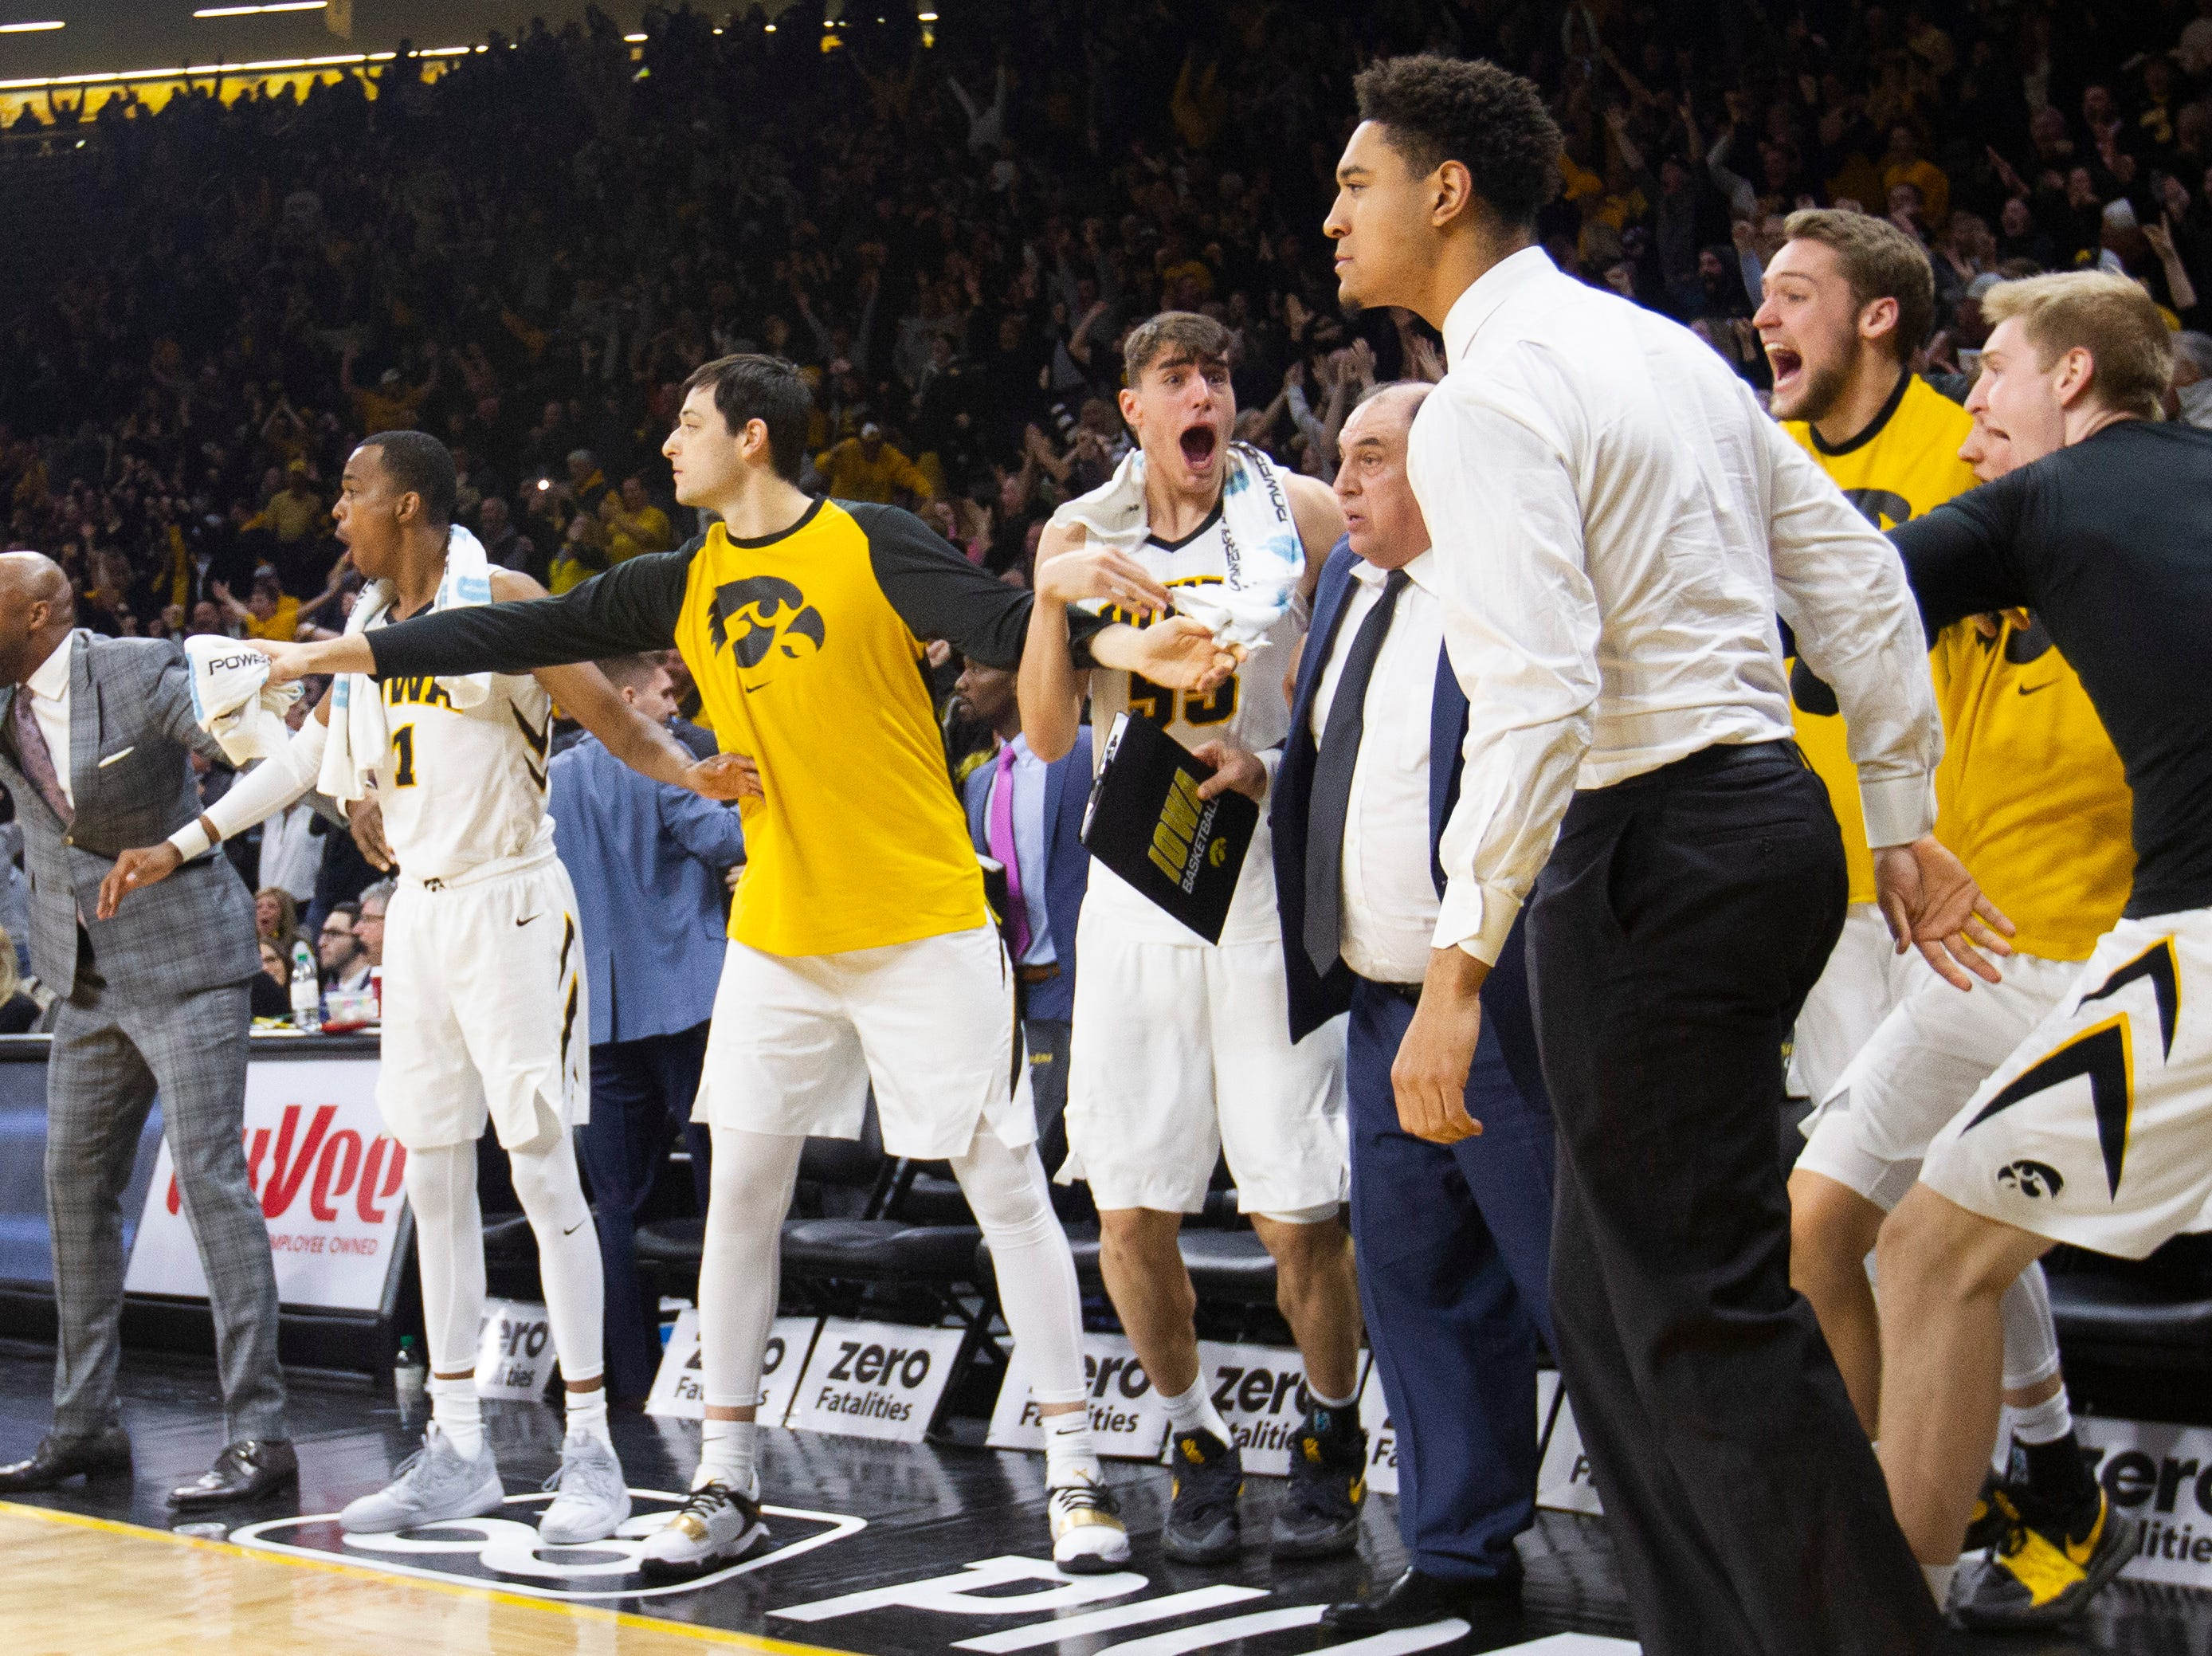 Iowa Hawkeyes bench reacts after Iowa guard Jordan Bohannon (not pictured) made a game-winning 3-point basket during a NCAA Big Ten Conference men's basketball game on Sunday, Feb. 10, 2019 at Carver-Hawkeye Arena in Iowa City, Iowa.